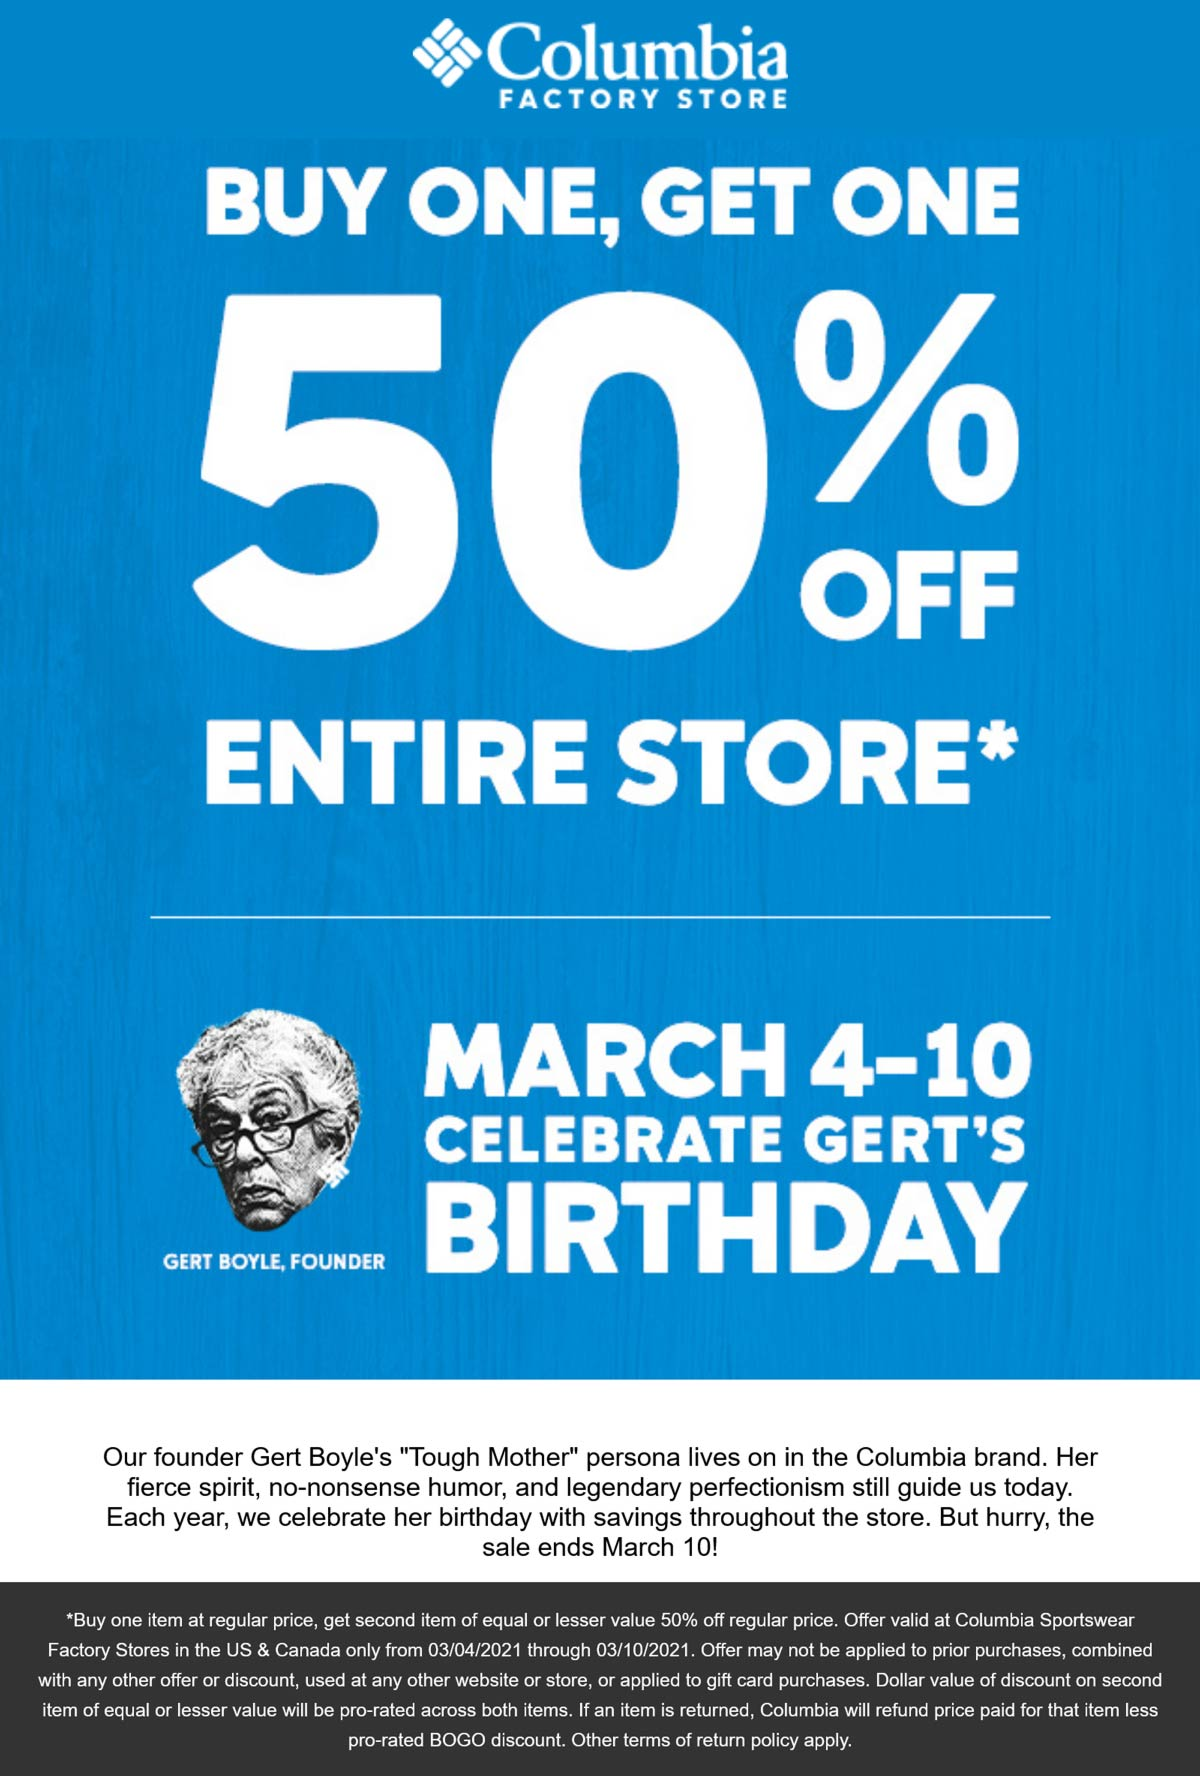 Columbia Factory Store stores Coupon  Second item 50% off at Columbia Factory Store #columbiafactorystore